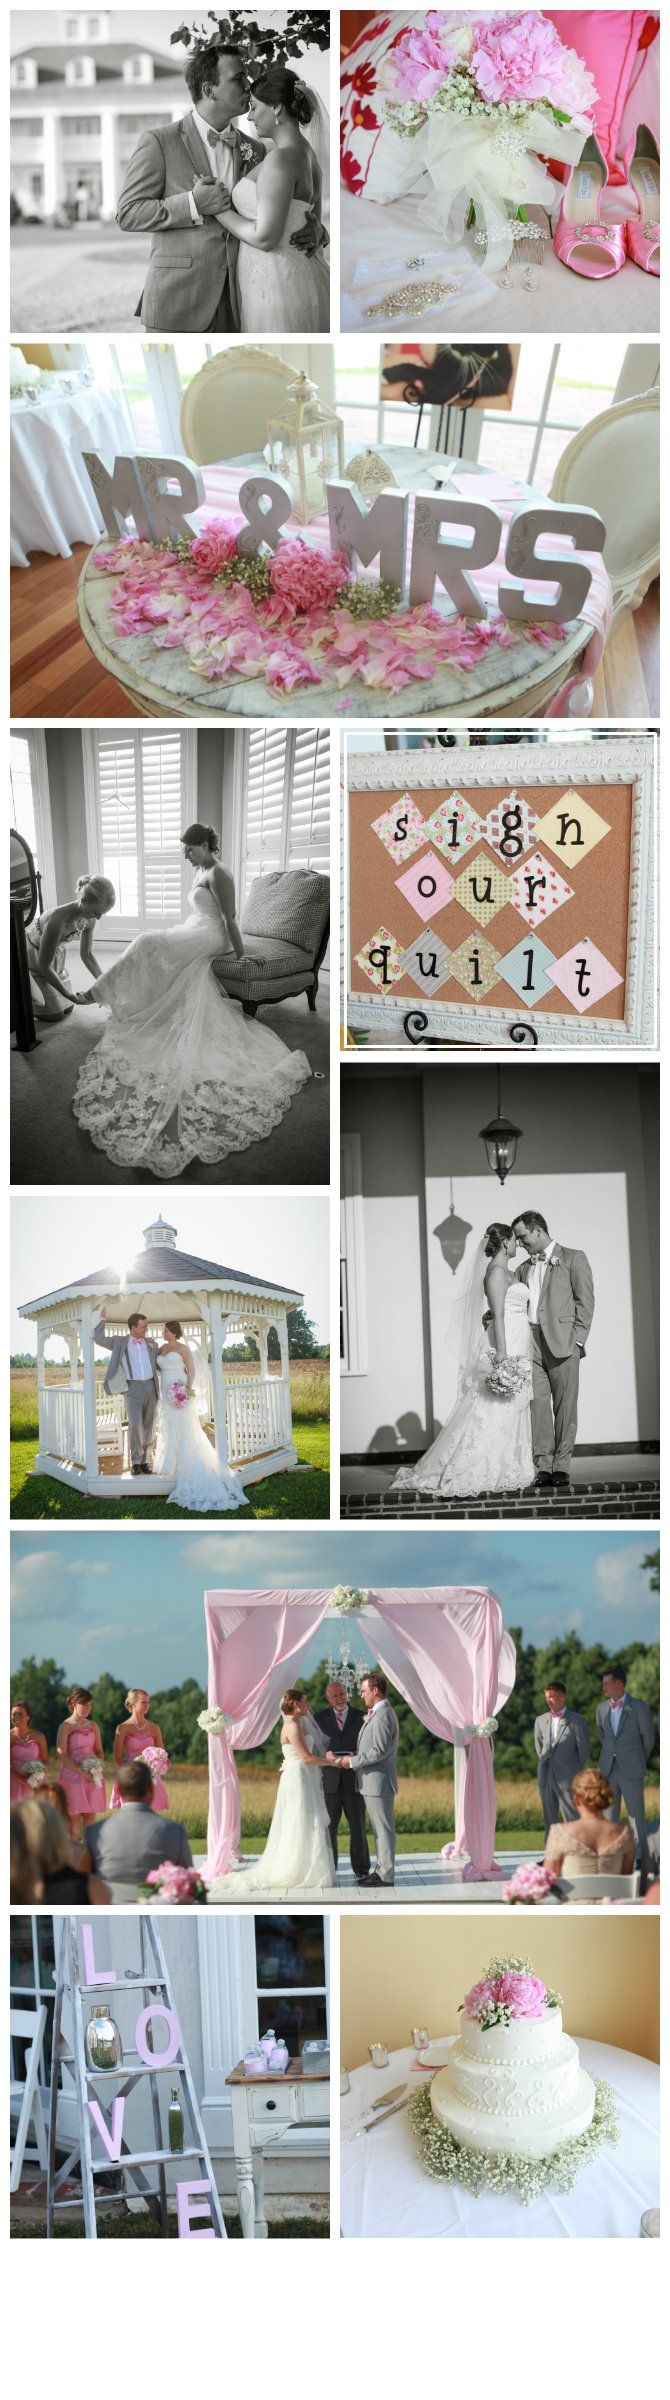 Country Plantation House Wedding   romantic pink wedding   peony & baby's breath bouquet   quilt guest book   lace wedding dress   classic decorations   wedding ceremony altar   wedding cake   photography by Cassie Peech & Co.